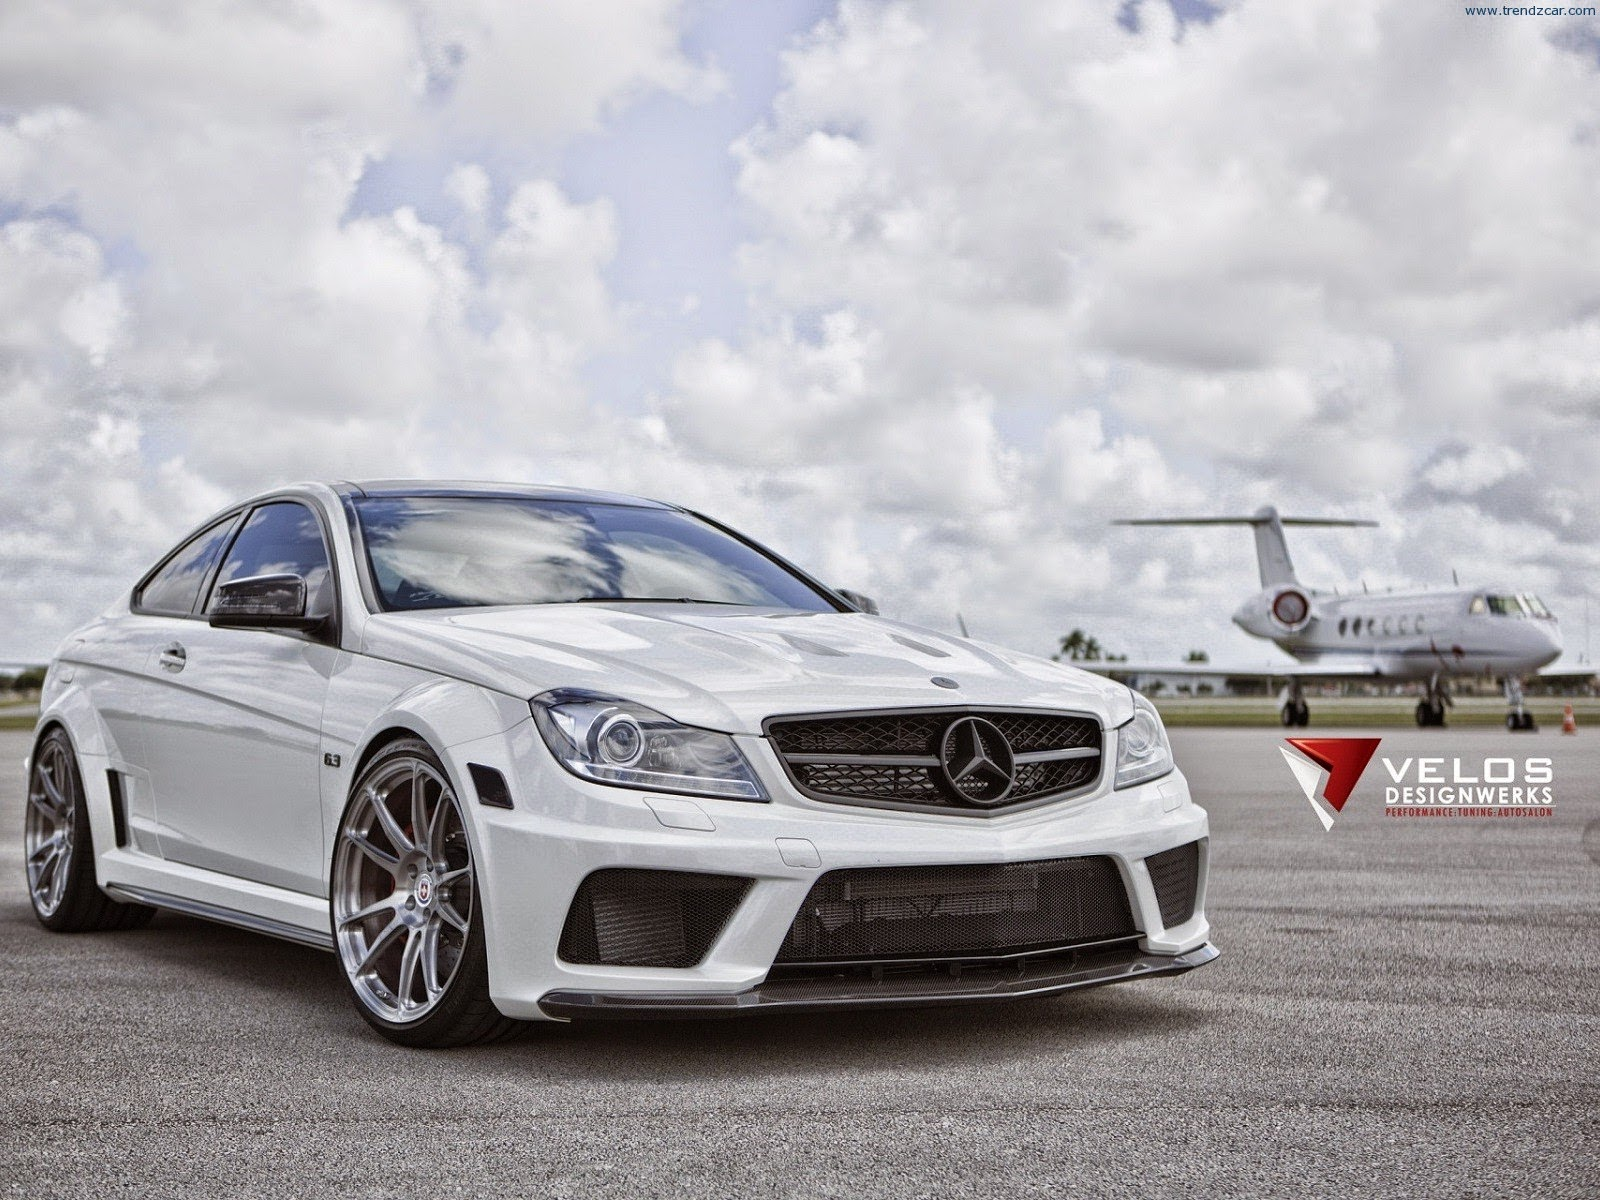 Mercedes benz c63 amg black series by velos designwerks for Mercedes benz e amg